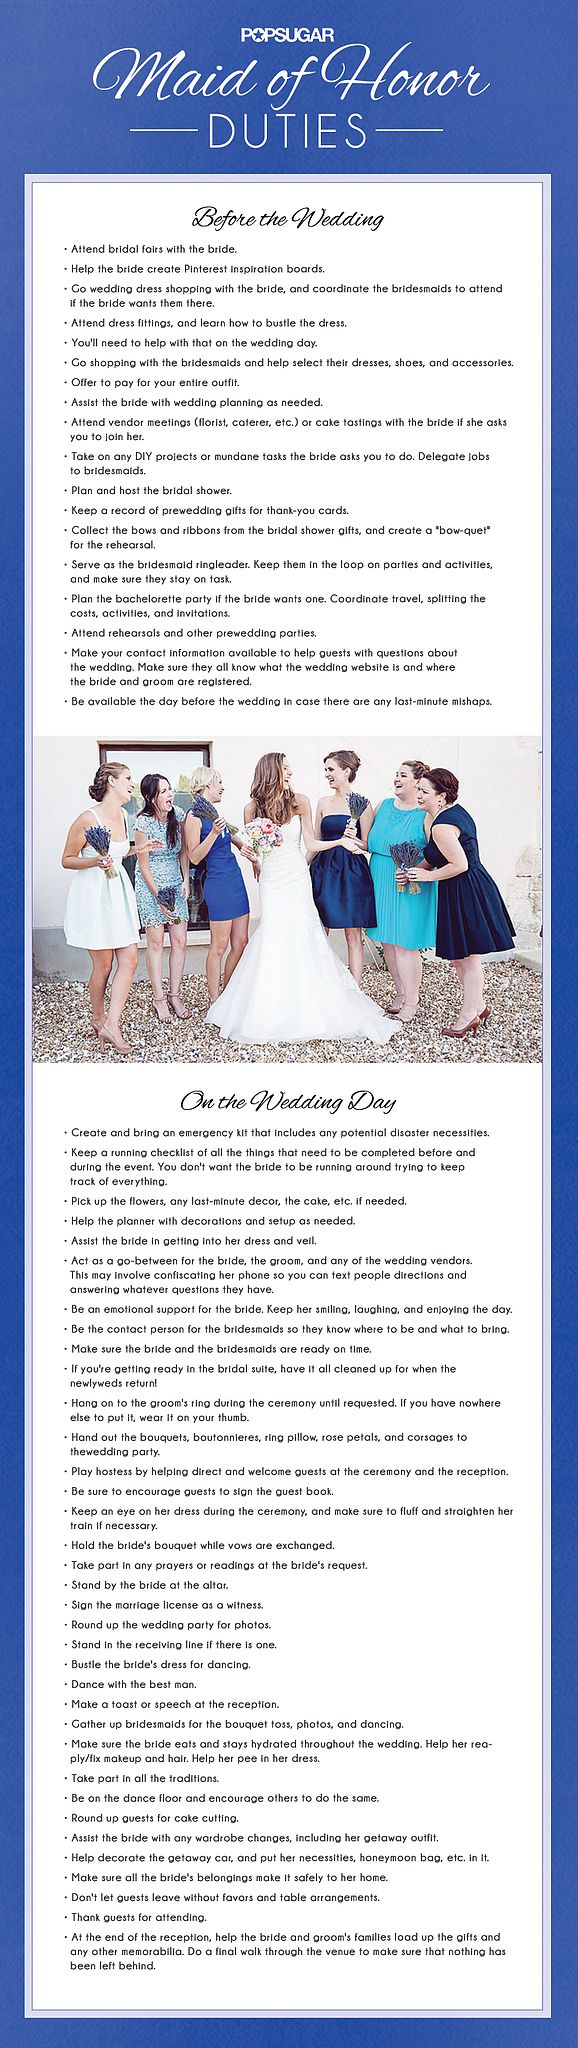 Maid of Honor Checklist: Pin this for future reference! And follow POPSUGARLove on Pinterest for even more wedding inspiration and advice!